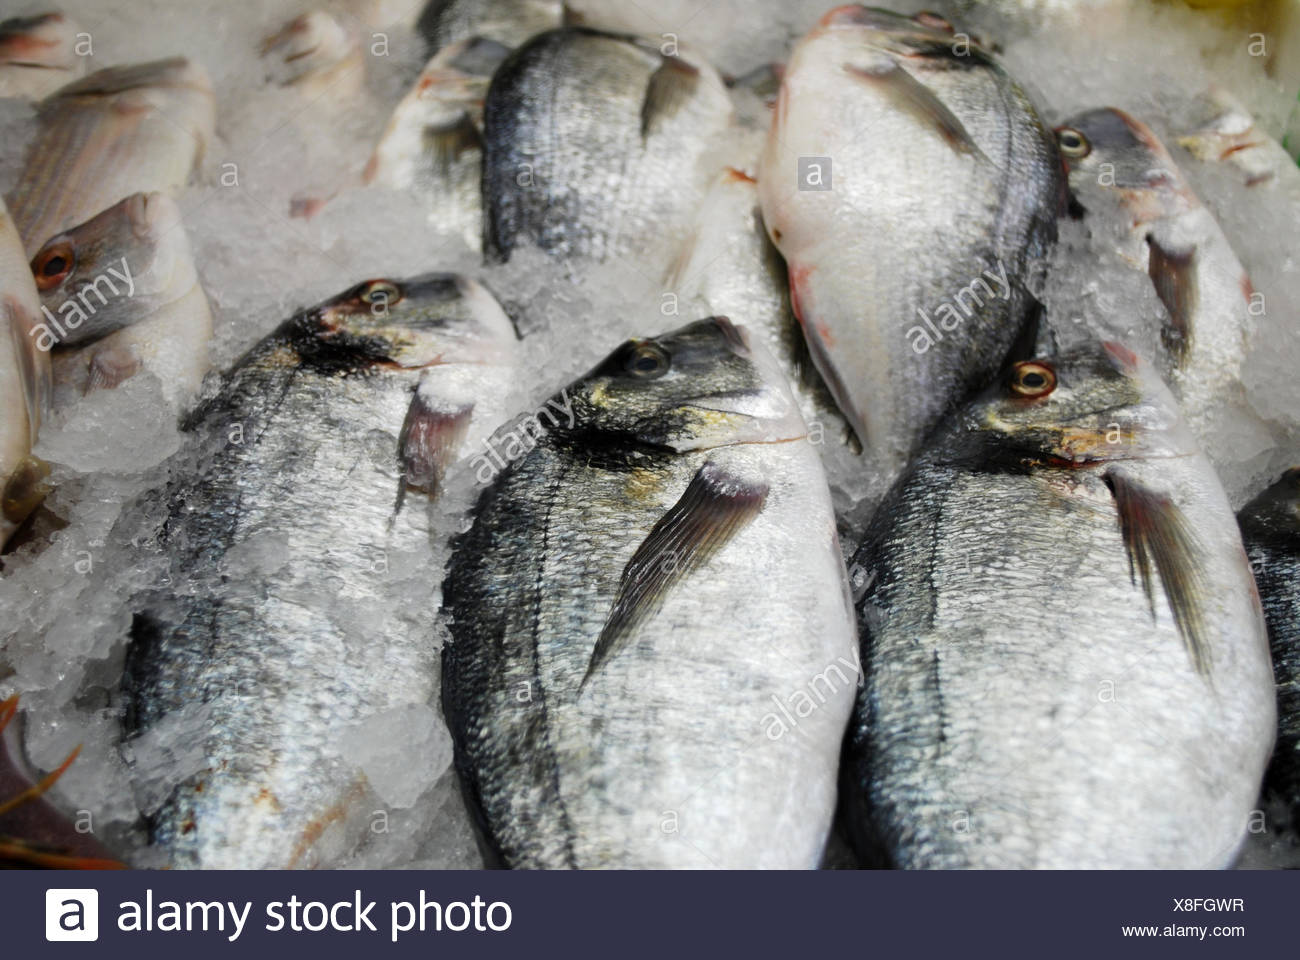 fresh cooled fishes - Stock Image